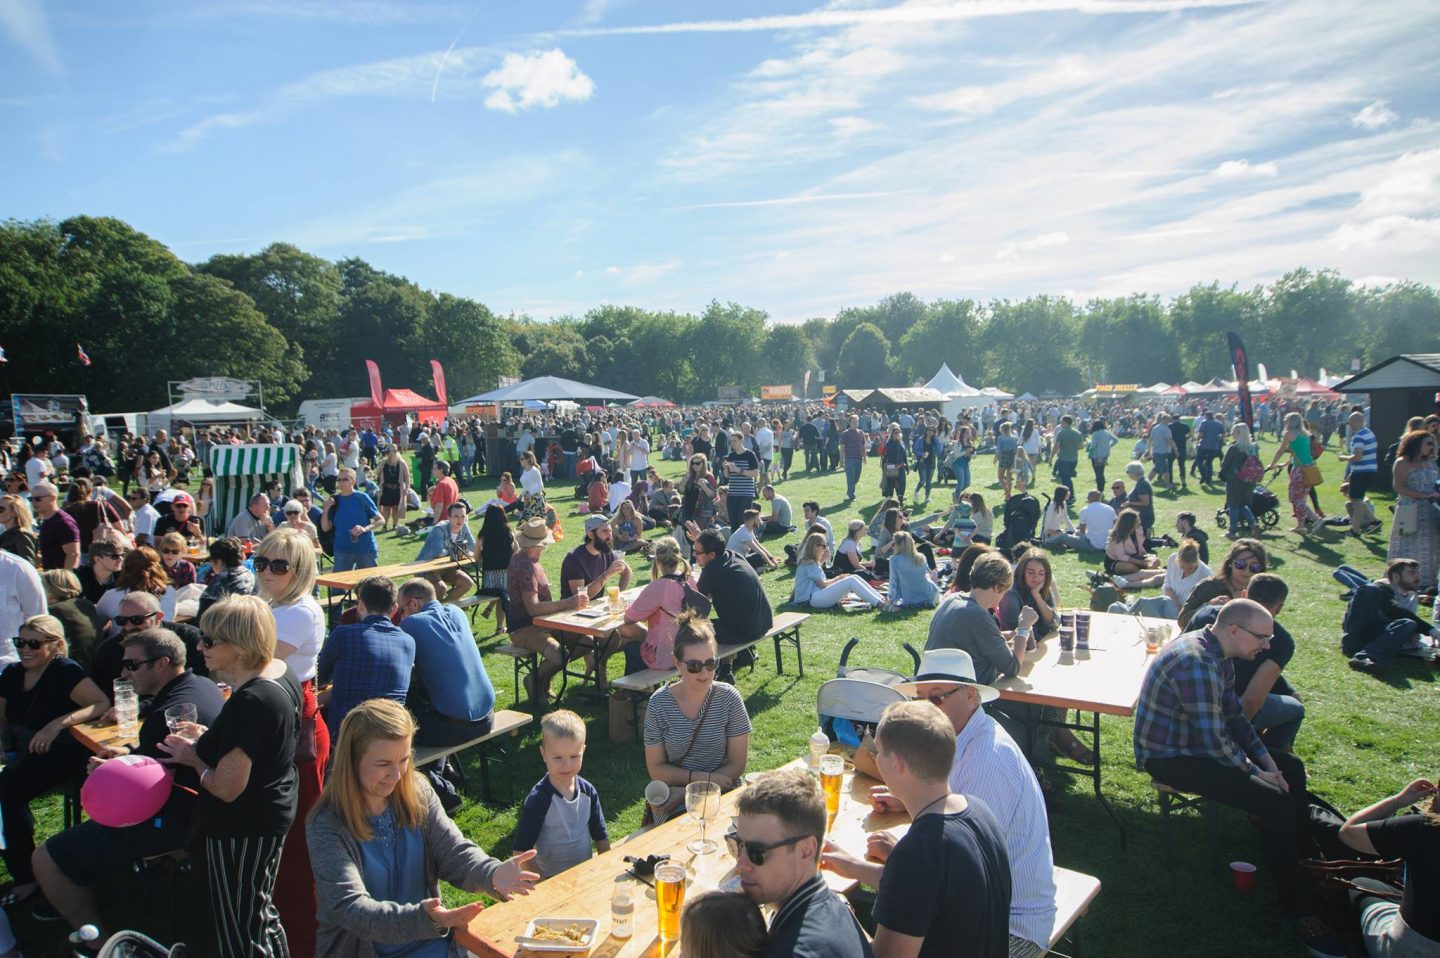 Manchester-Eats-Festival-How-To-Win-Free-Tickets-Blogger-Crowd